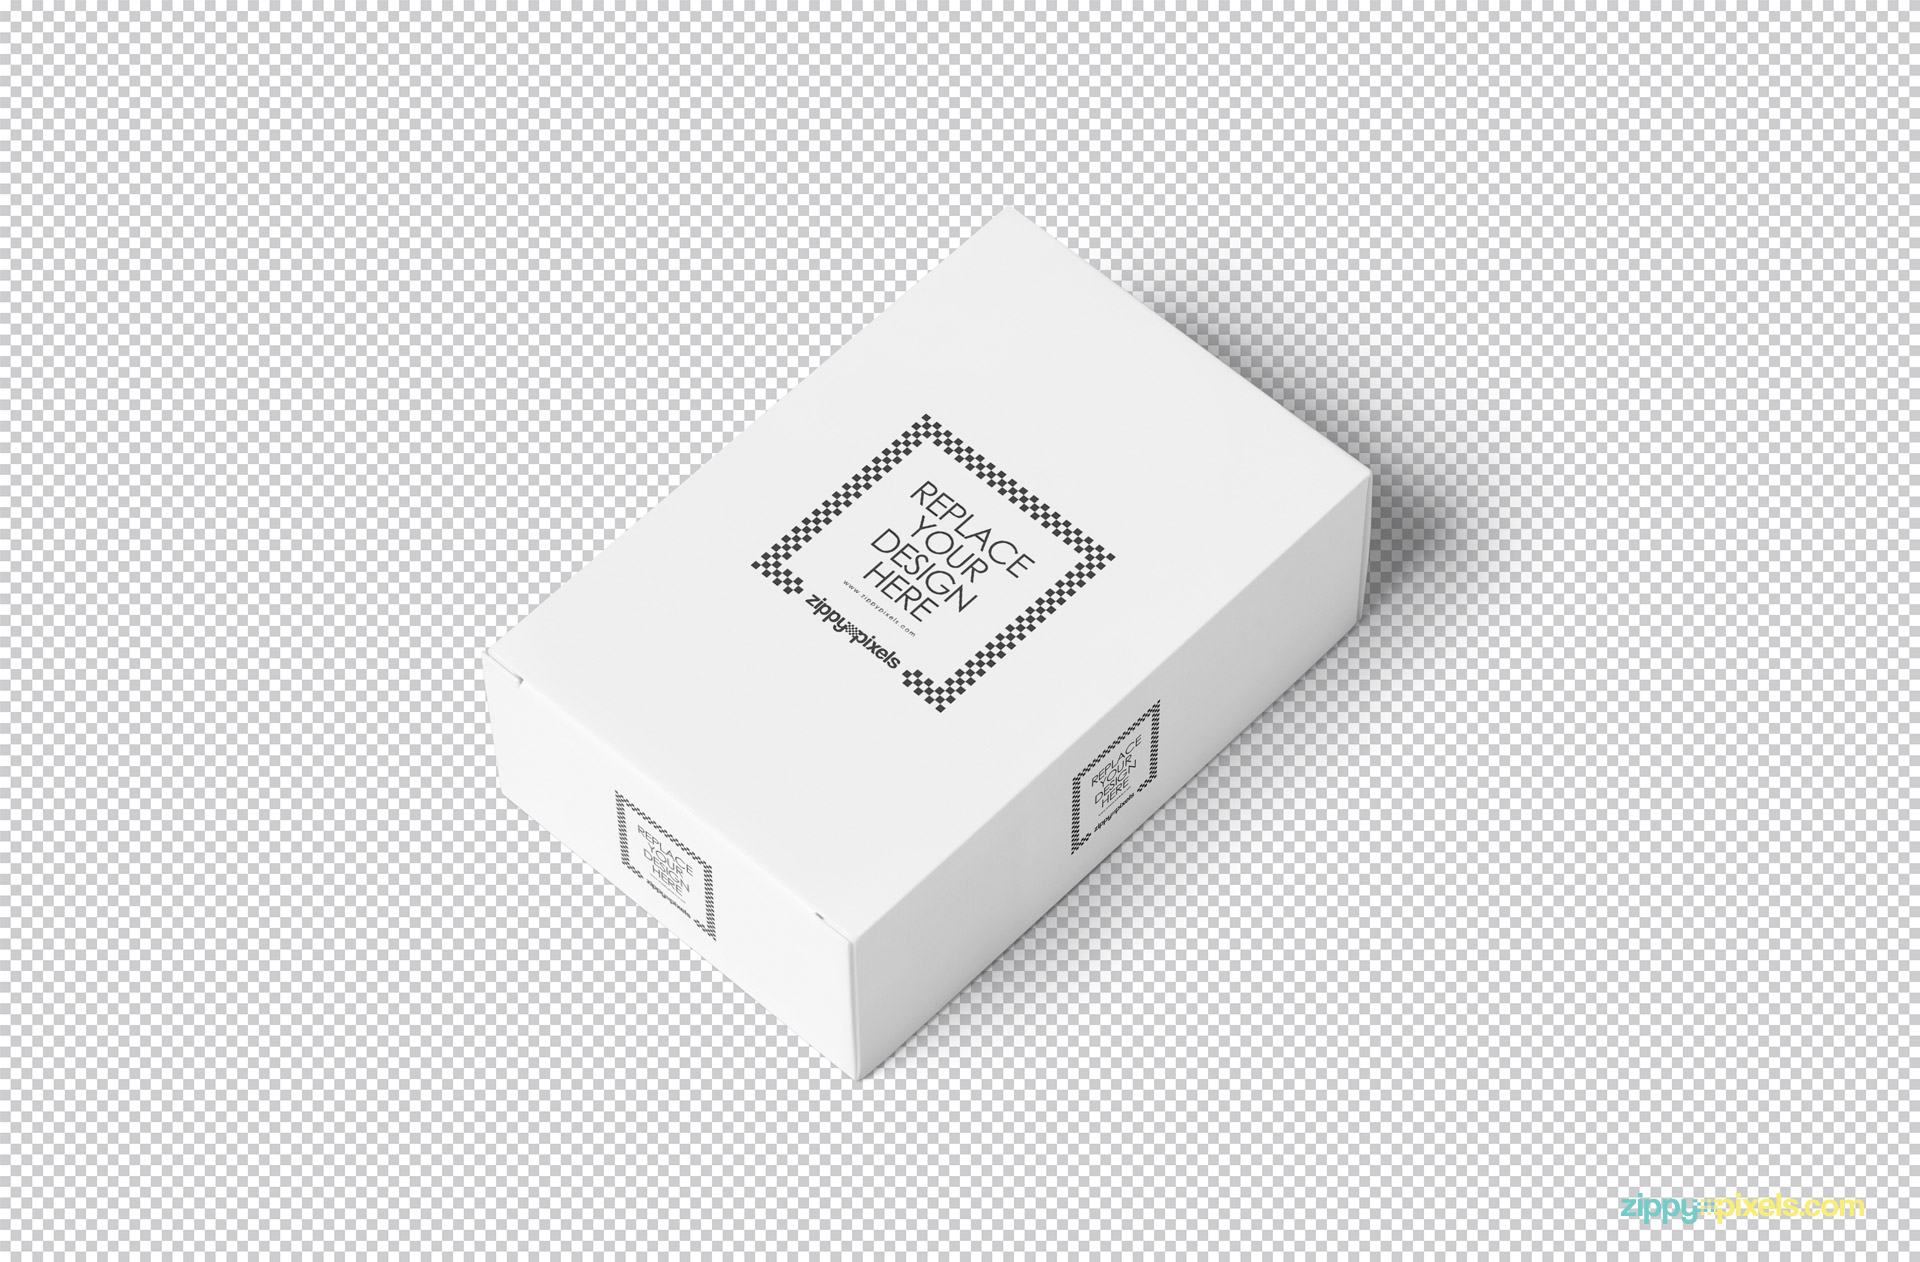 White plain box mockup PSD.